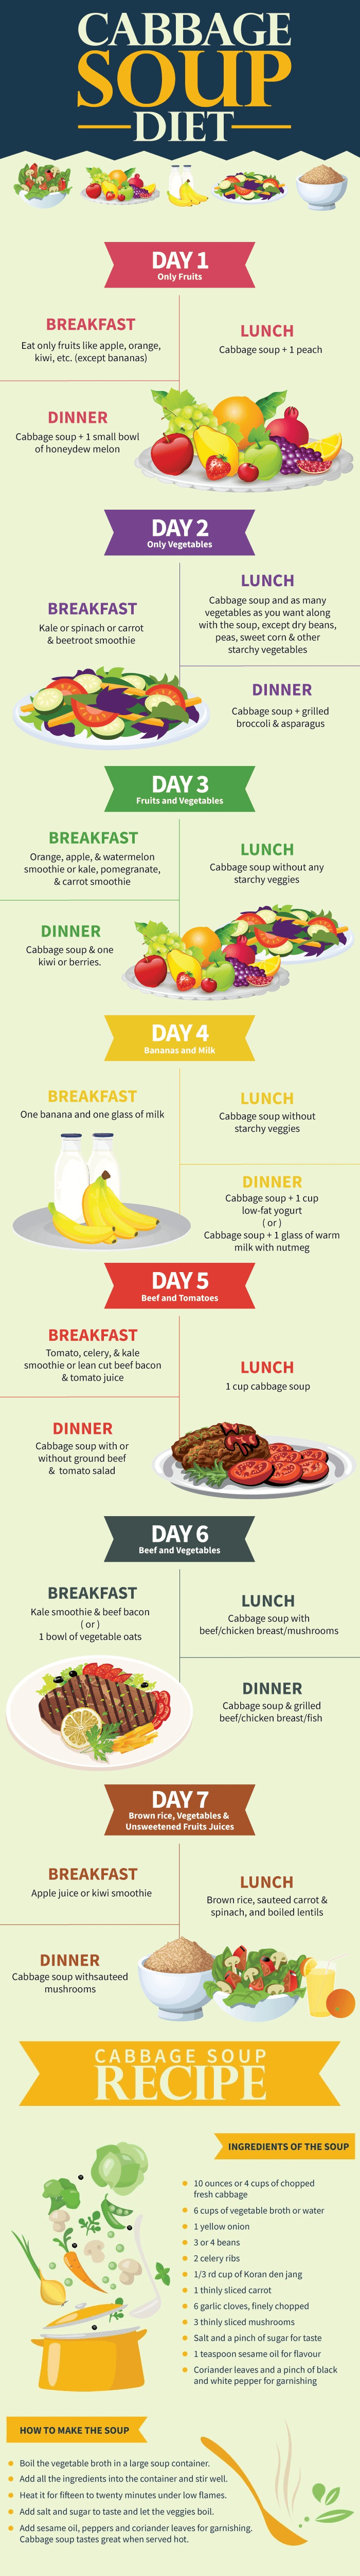 10 day soup diet